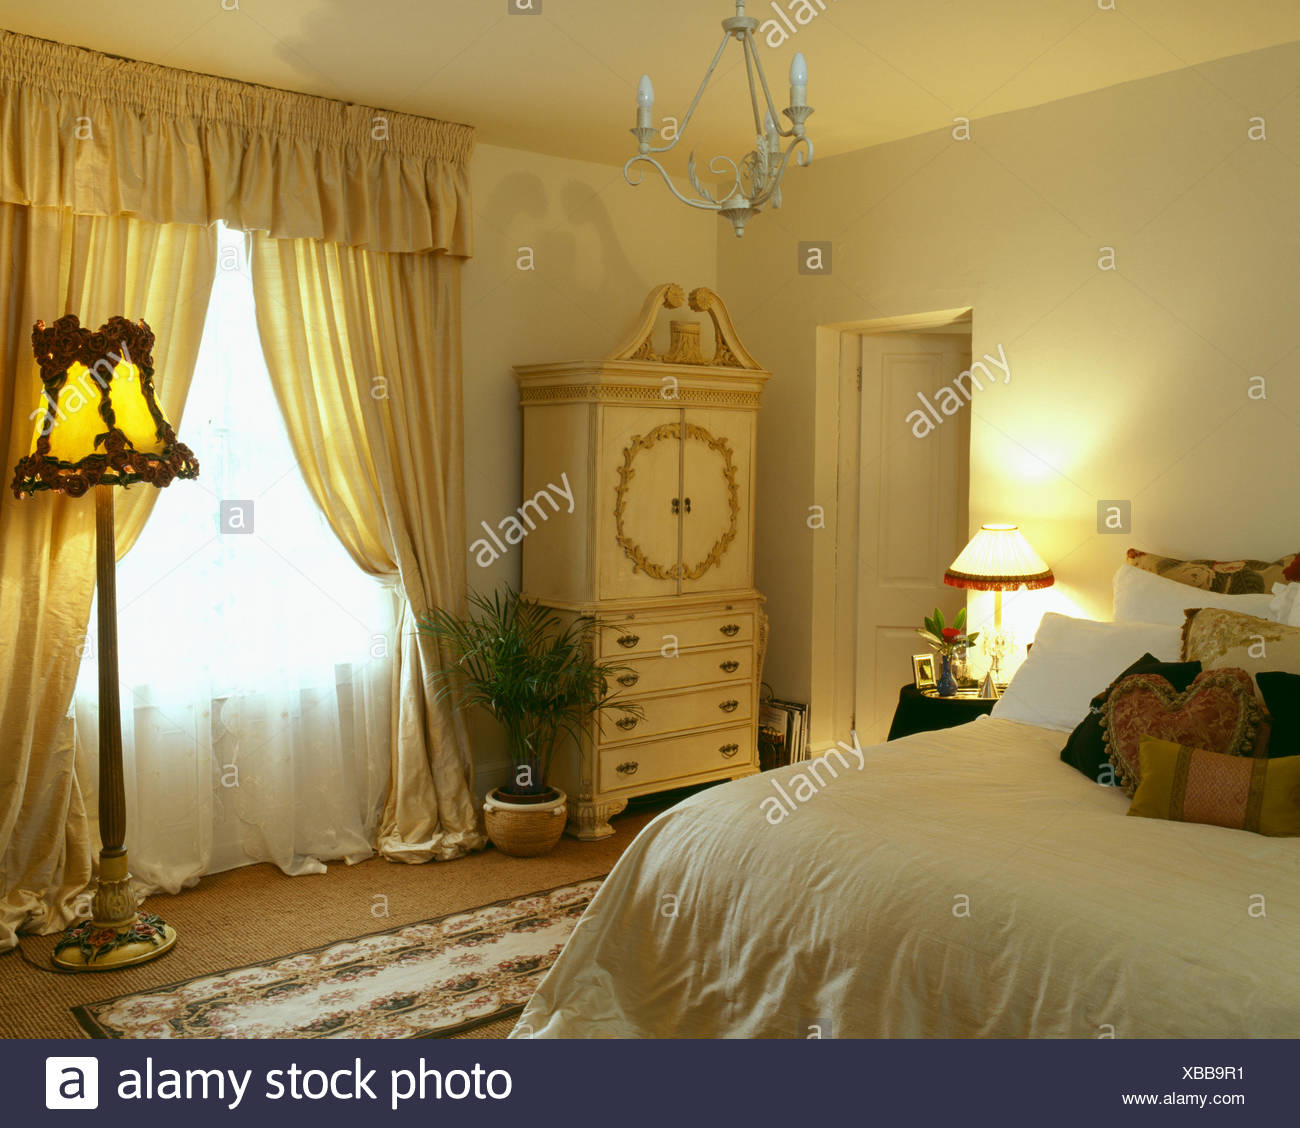 White Voile And Yellow Silk Curtains On Window In Pale Yellow Bedroom With  Lighted Standard Lamp And Cream Cupboard